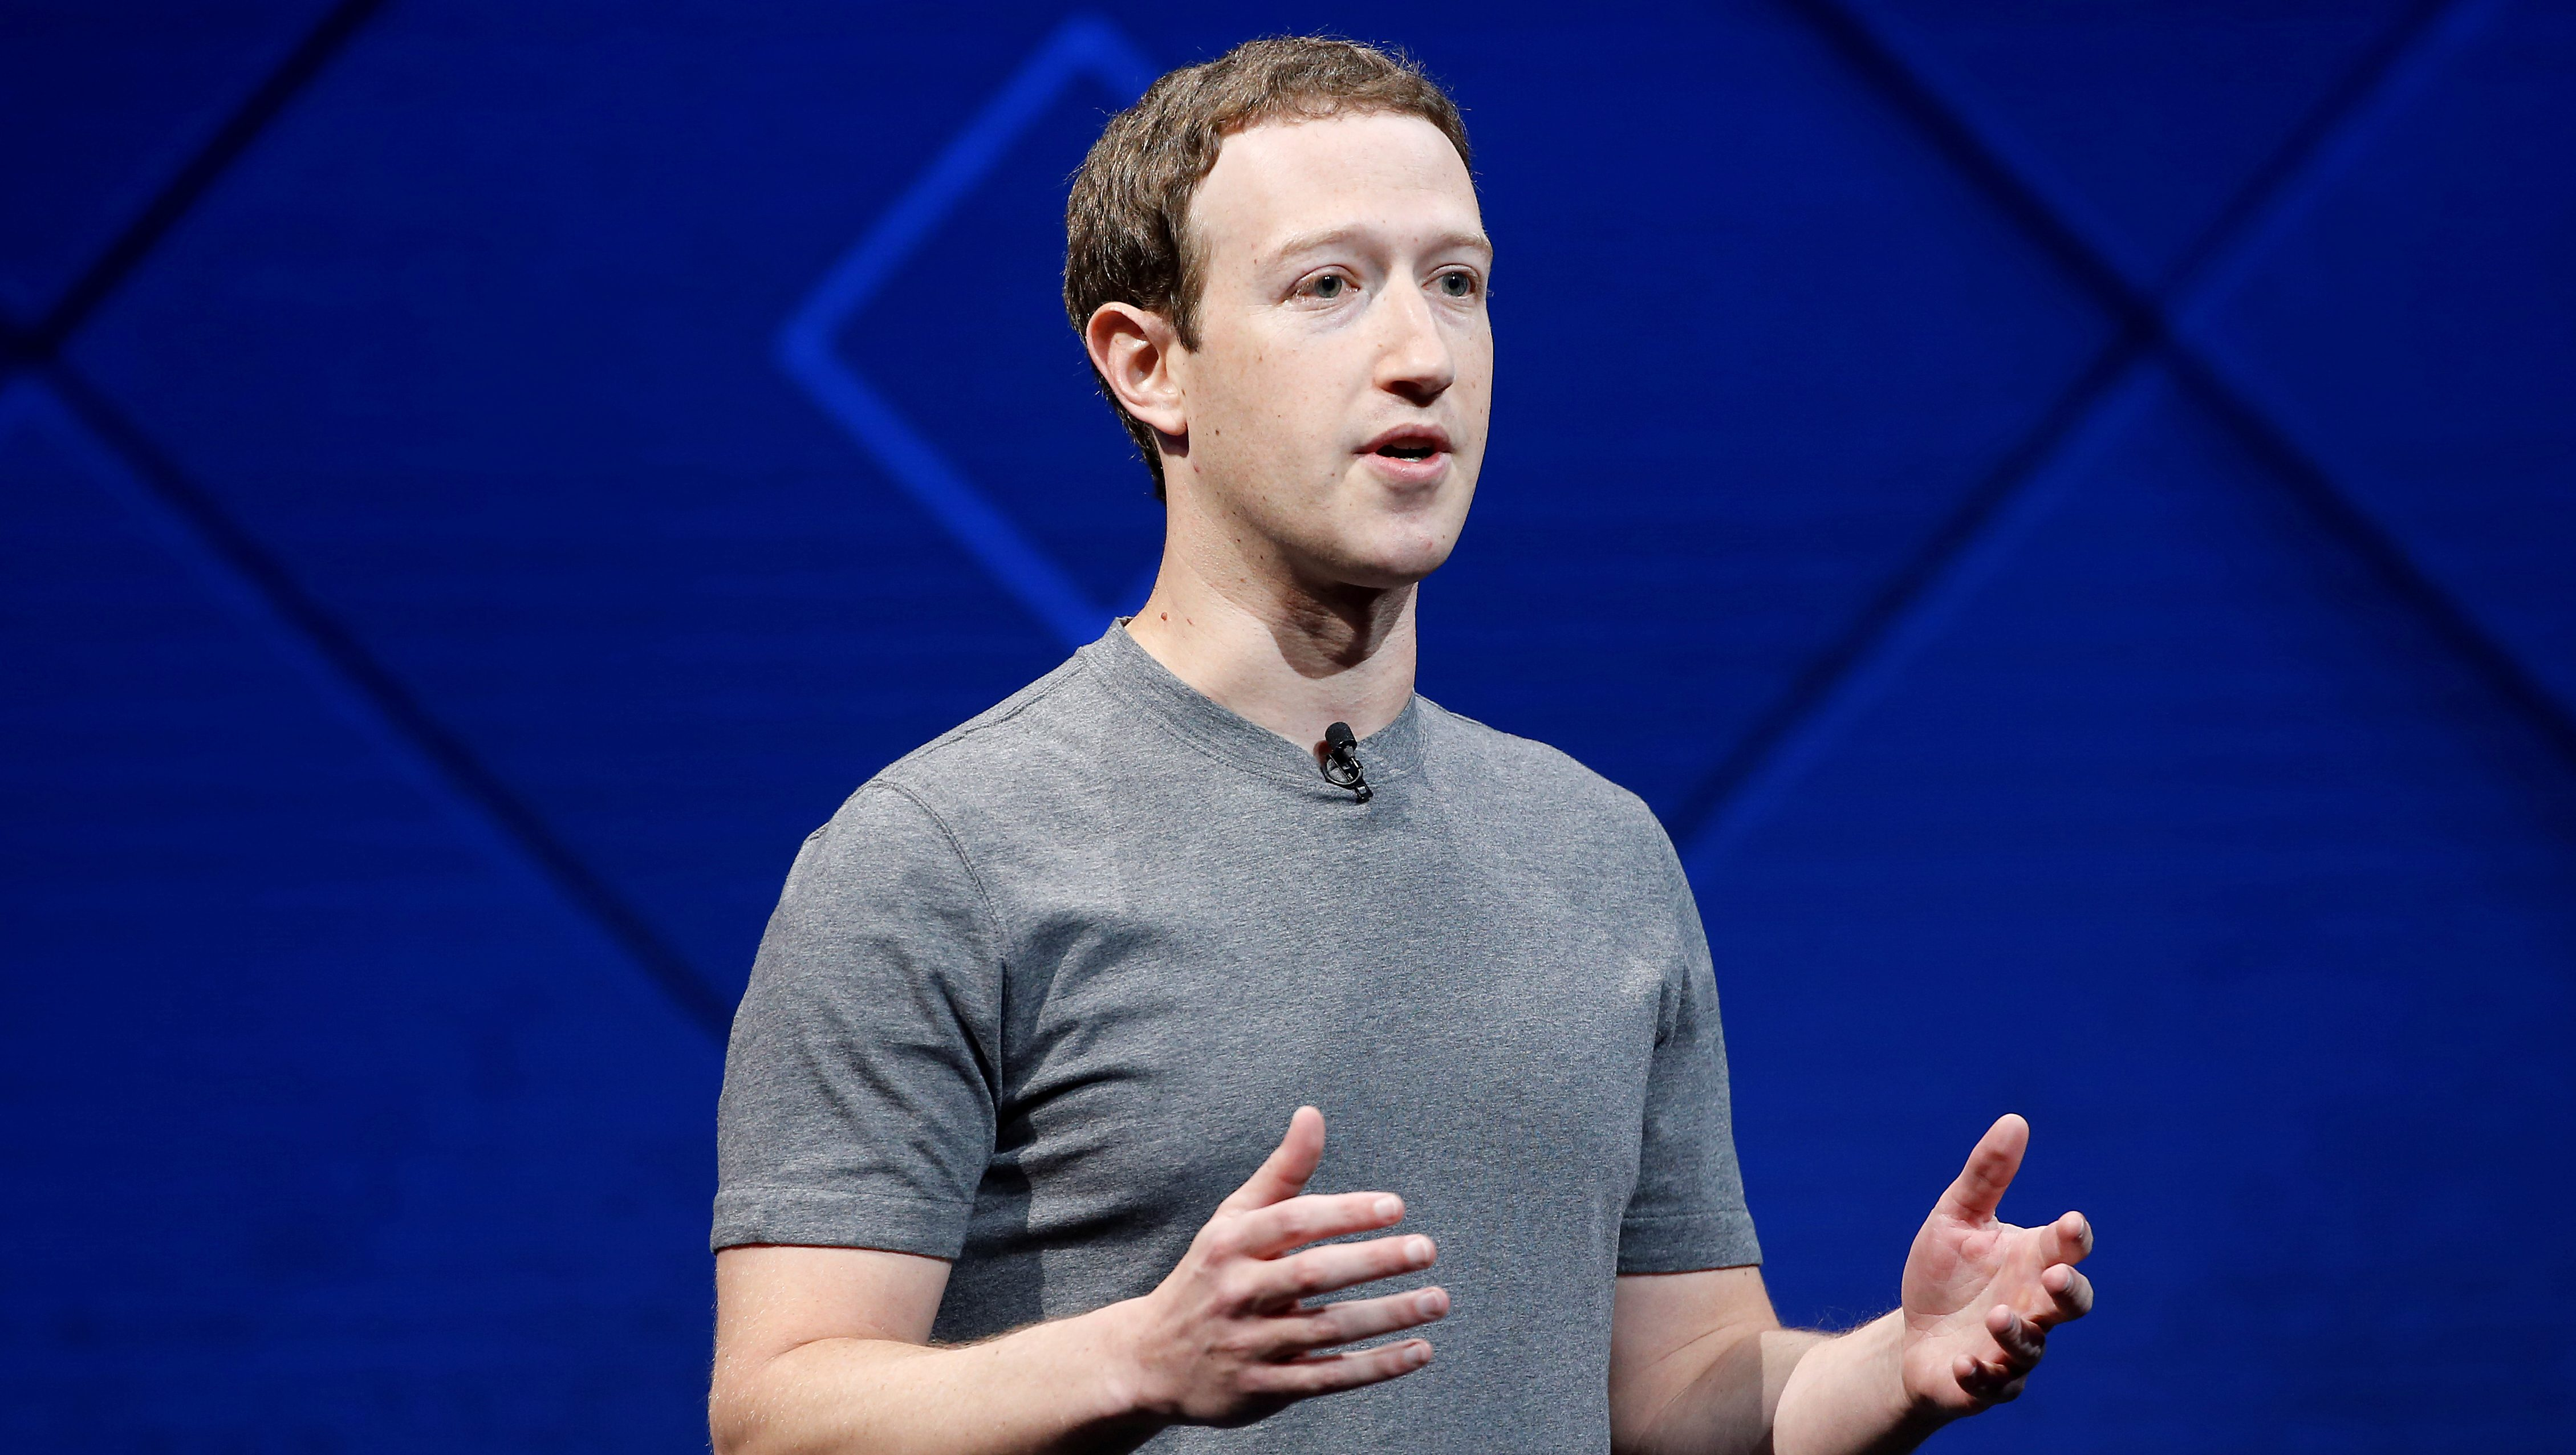 FILE PHOTO: Facebook Founder and CEO Mark Zuckerberg speaks on stage during the annual Facebook F8 developers conference in San Jose, California, U.S., April 18, 2017. REUTERS/Stephen Lam/File Photo - RC1E948B6D00